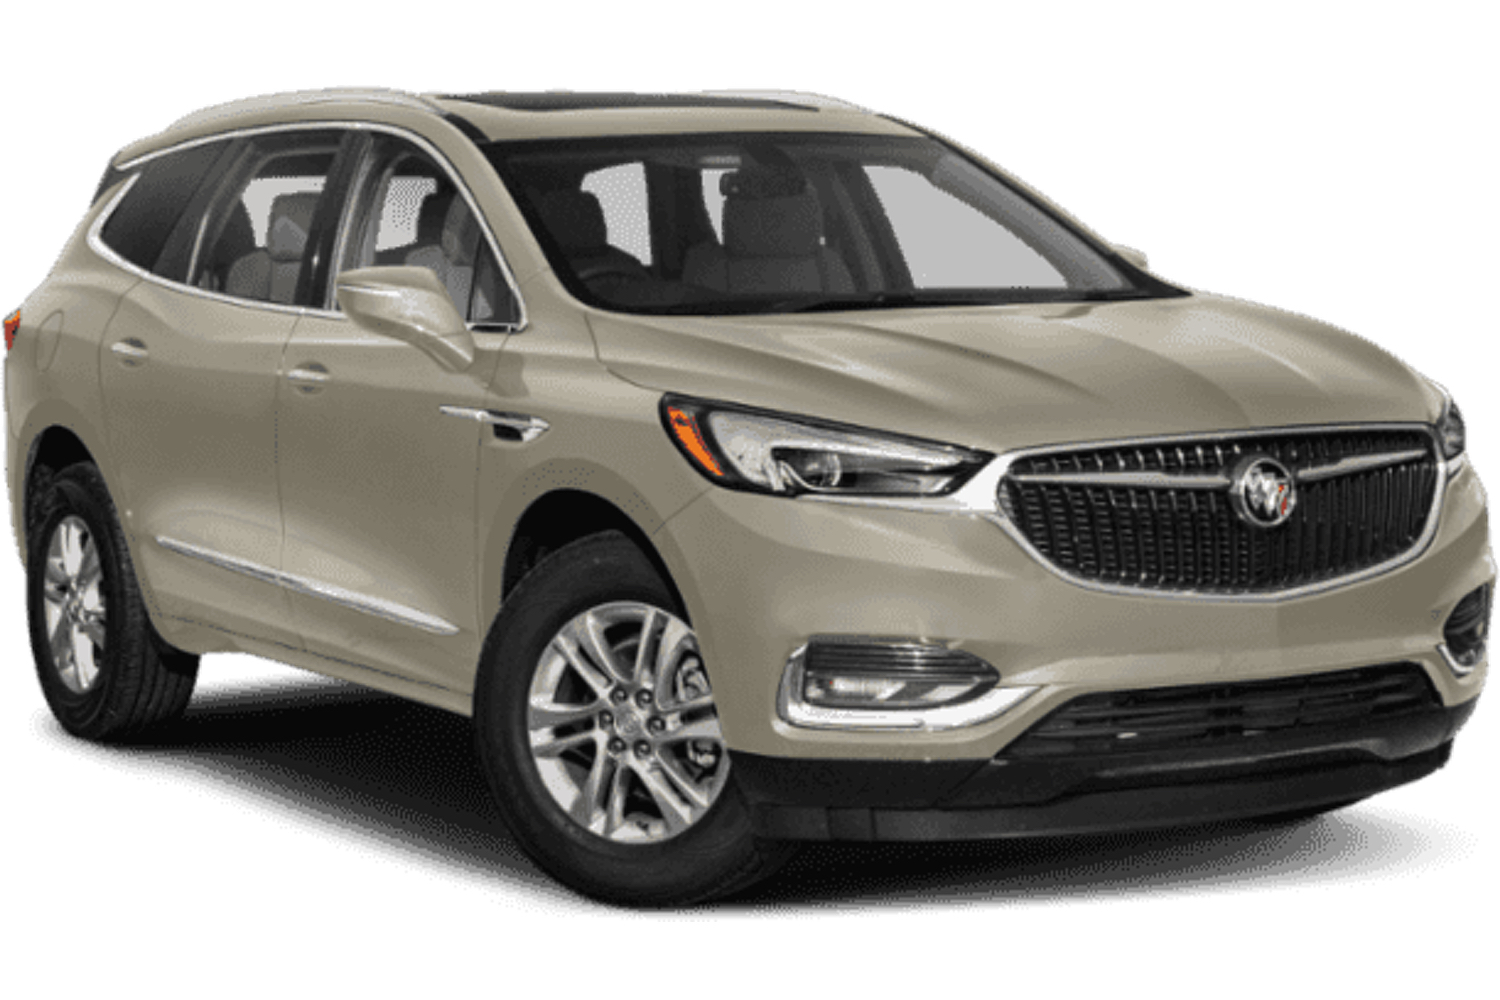 new 2022 buick enclave new colors oil type options